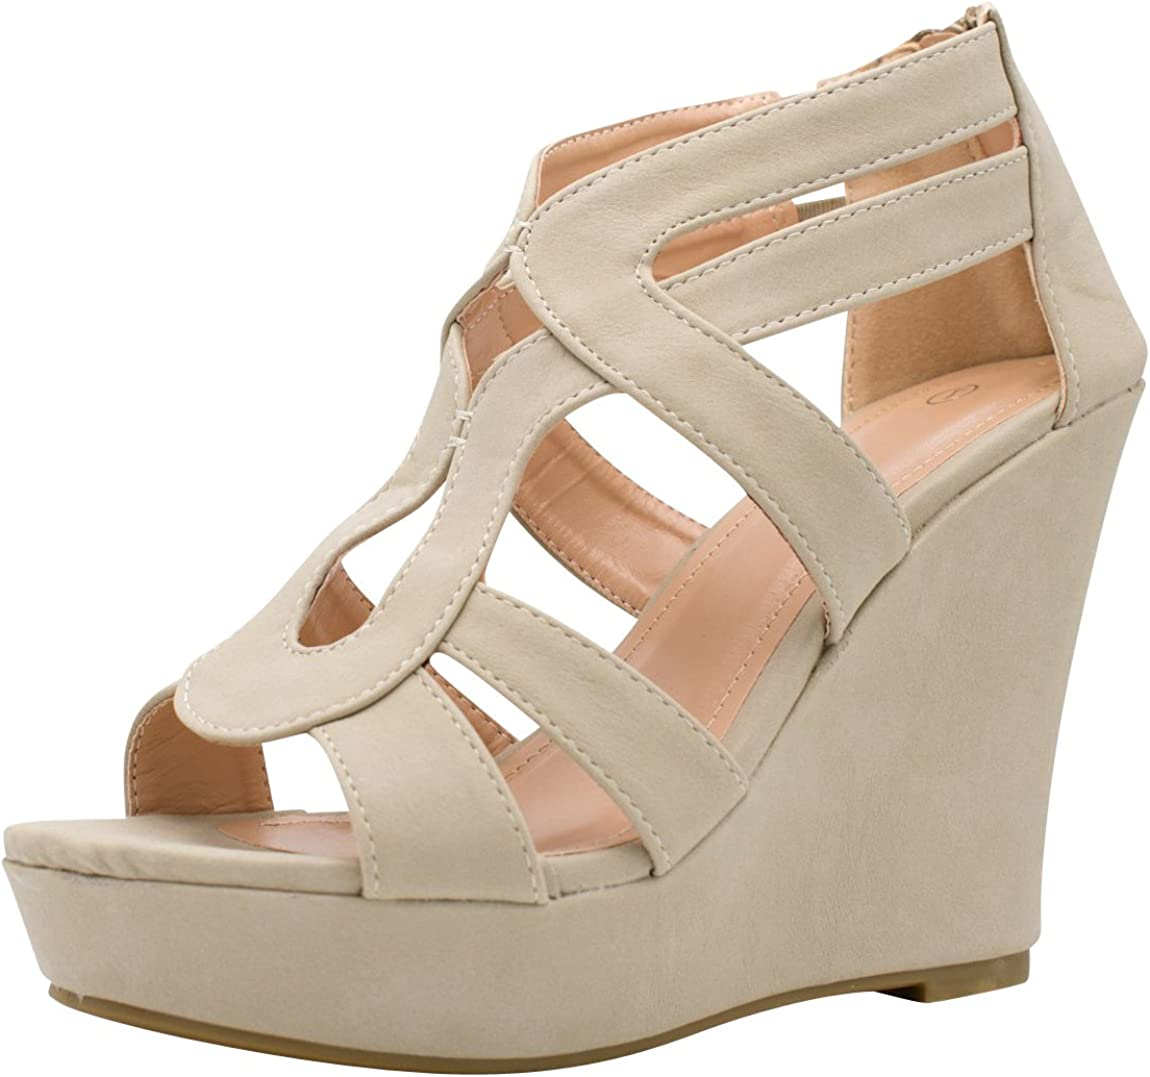 Cambridge Select Free shipping anywhere in the Limited time for free shipping nation Women's Open Toe Platform Chunky W Cutout Caged